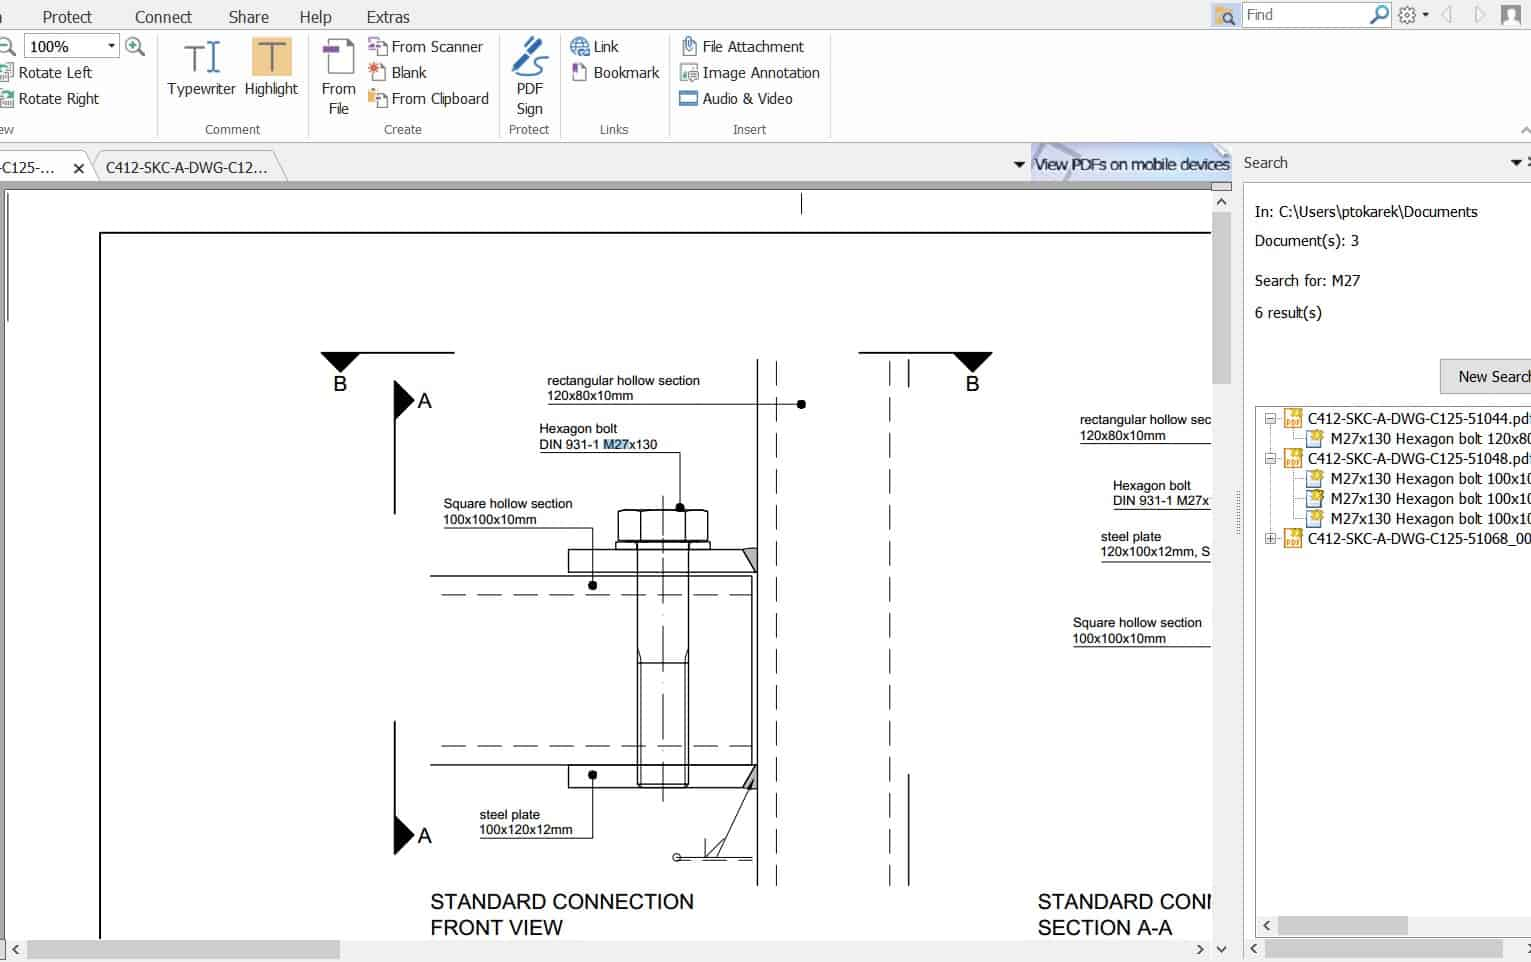 Construction Management Software - How to search through